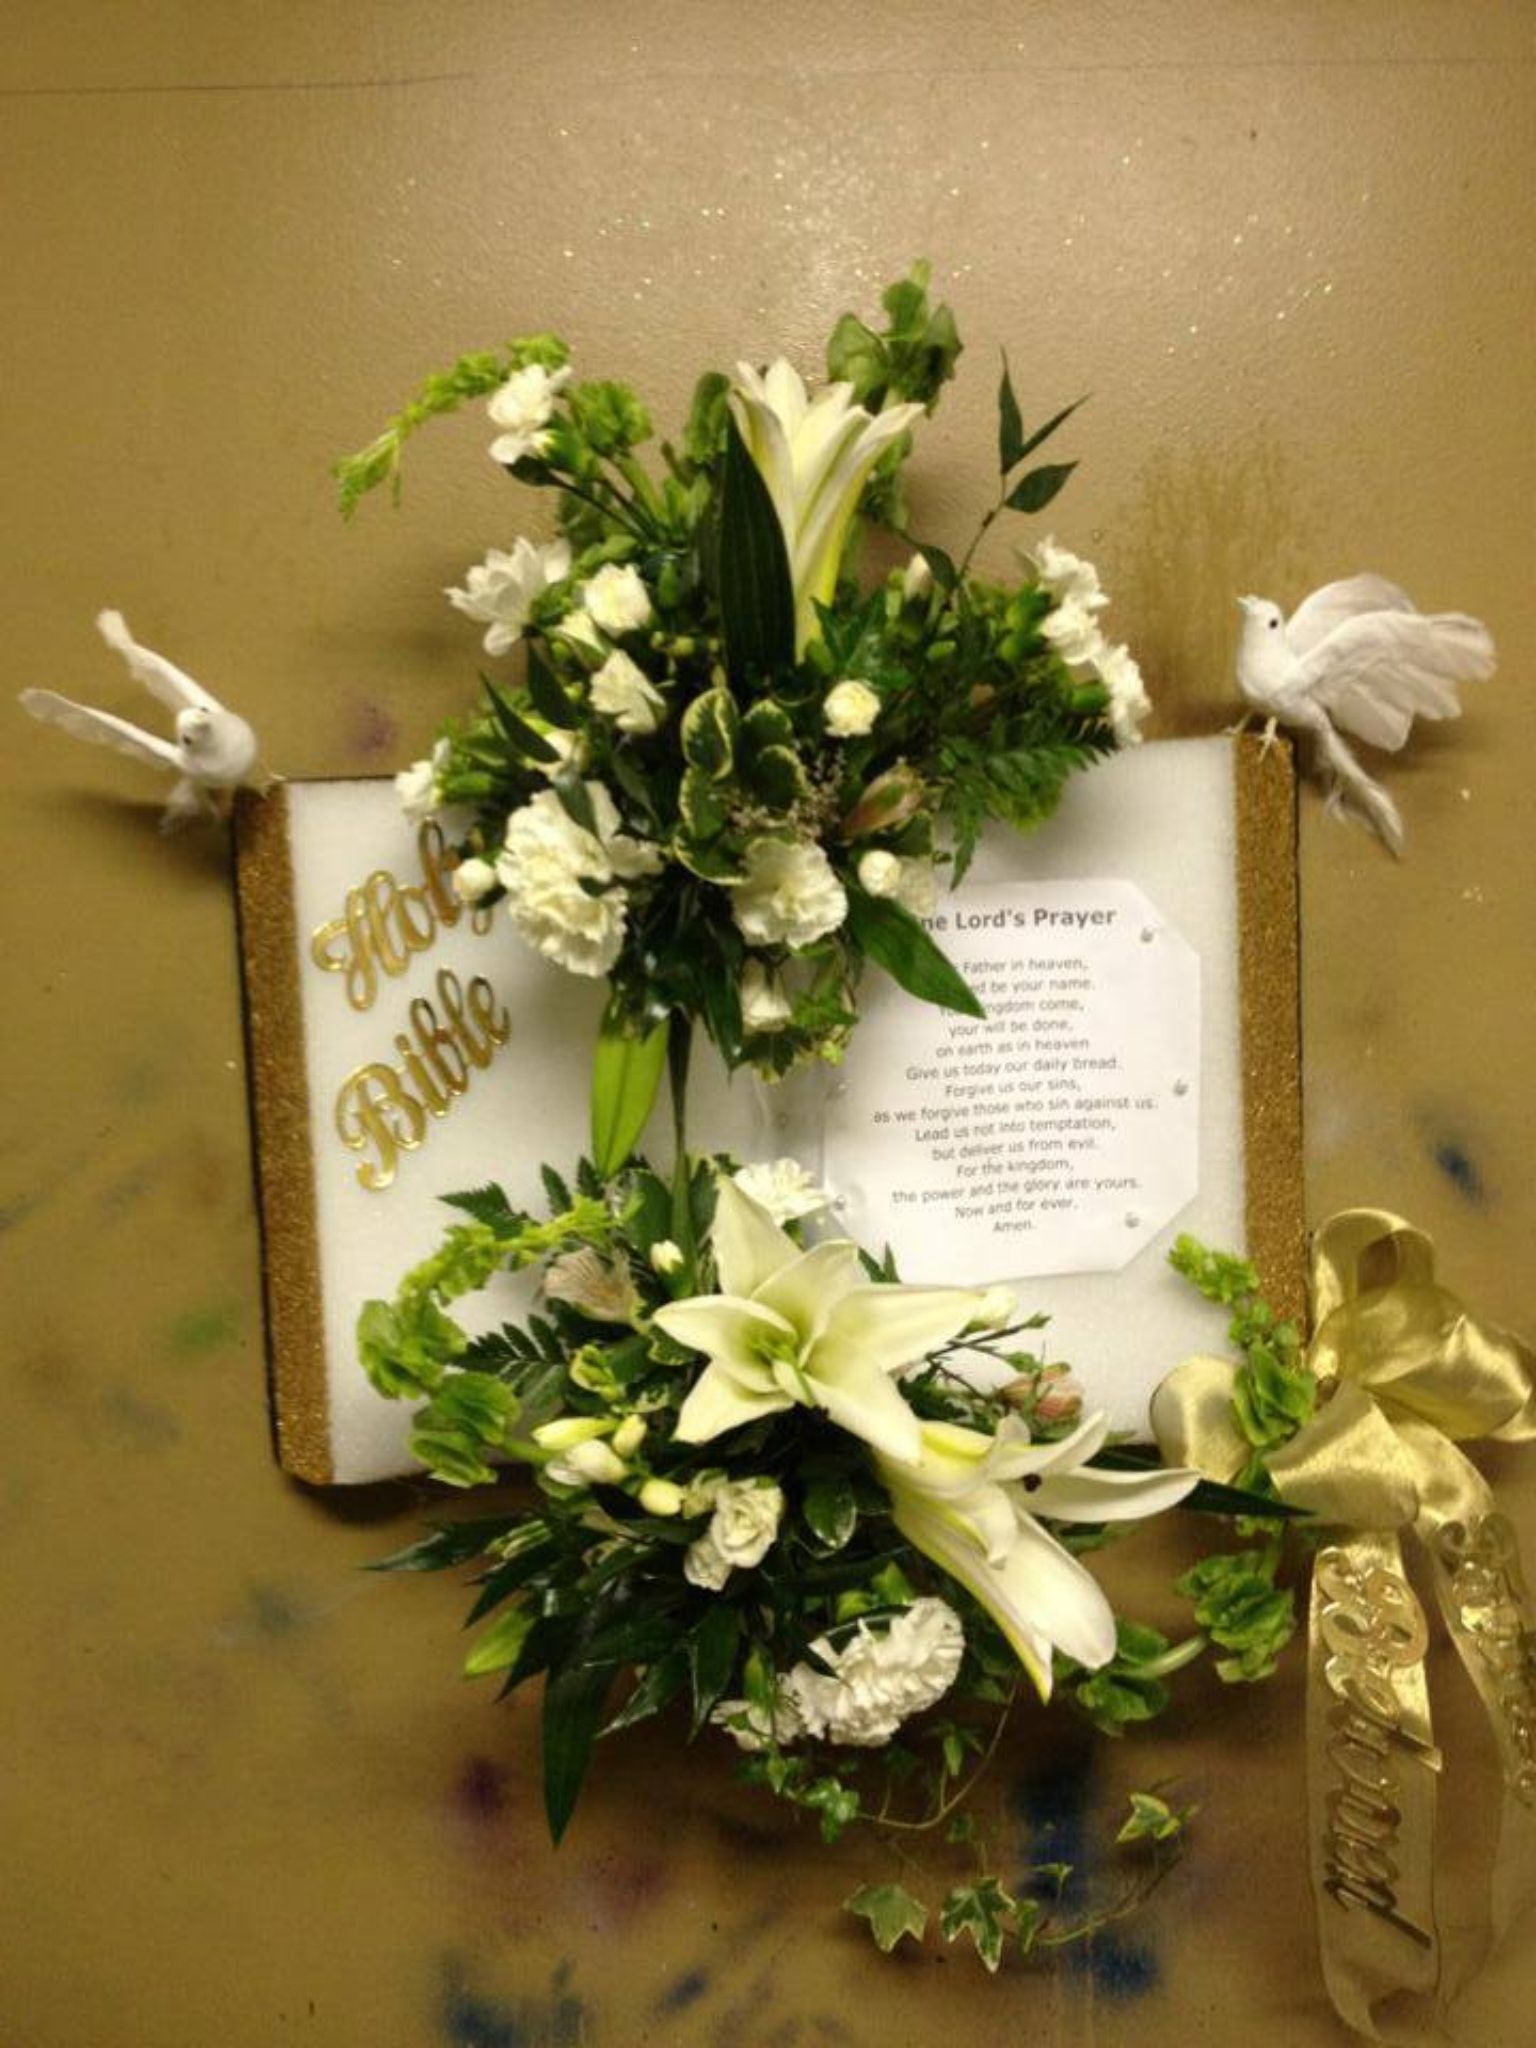 Bible with flowers Funeral floral arrangements